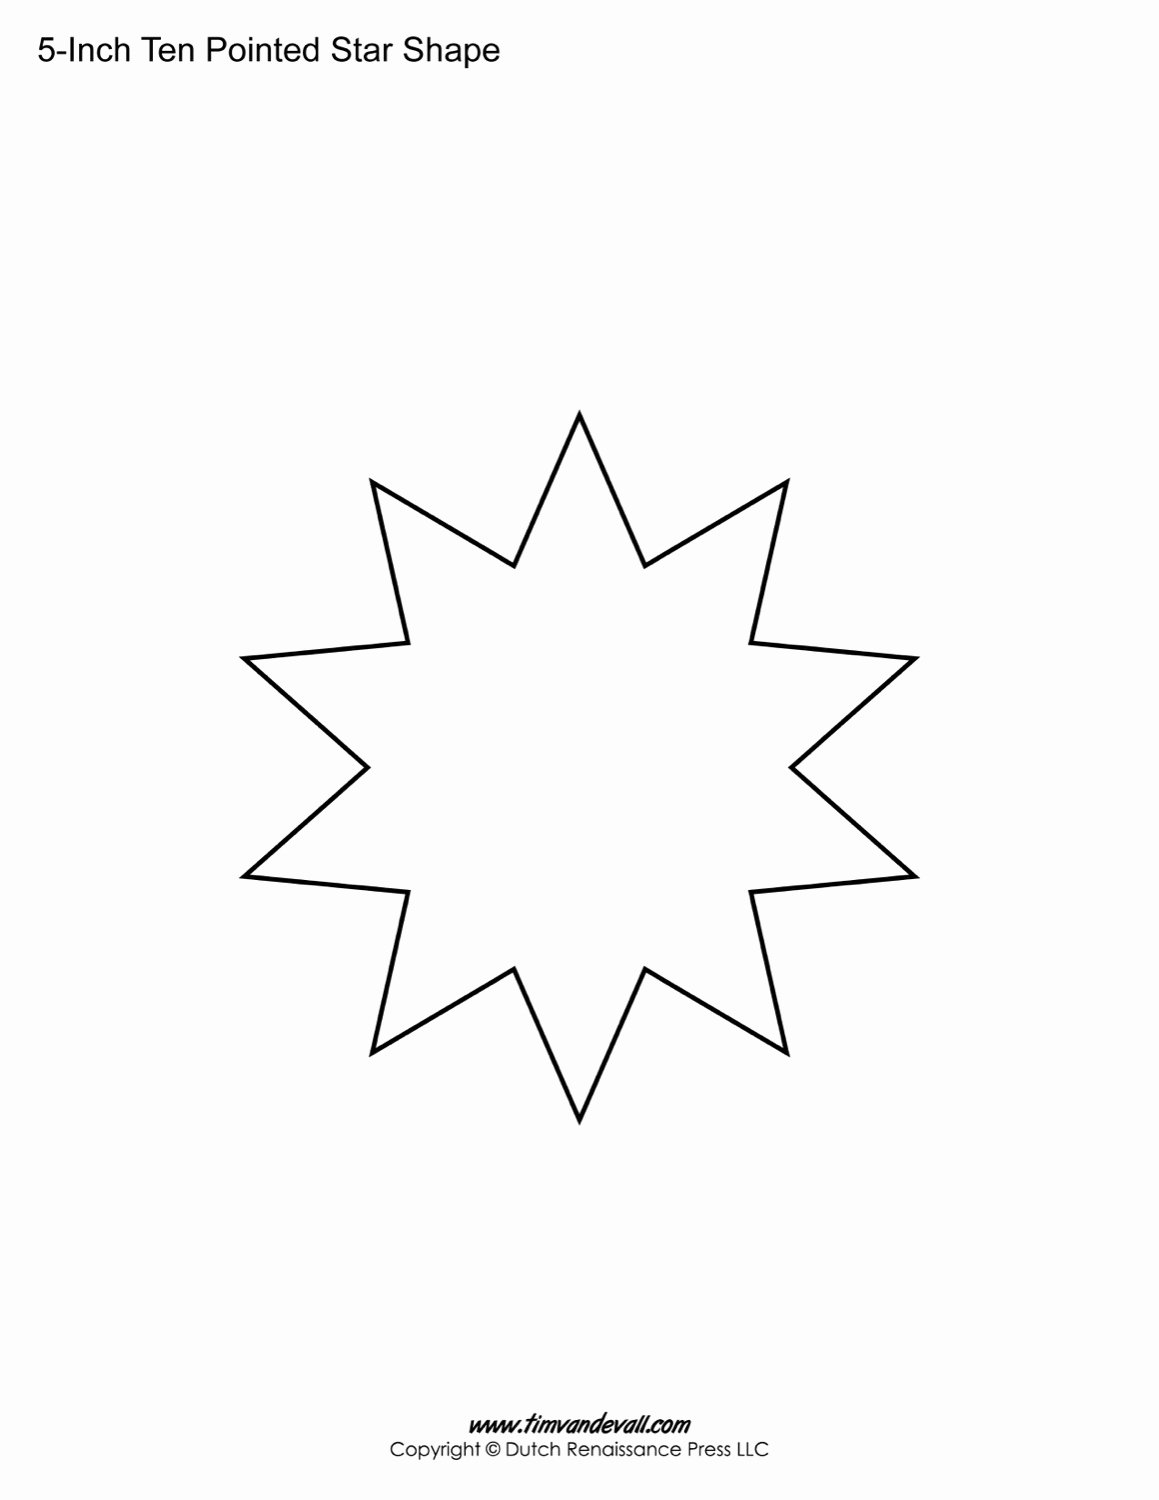 10 Inch Star Template Fresh Blank Ten Pointed Star Shapes